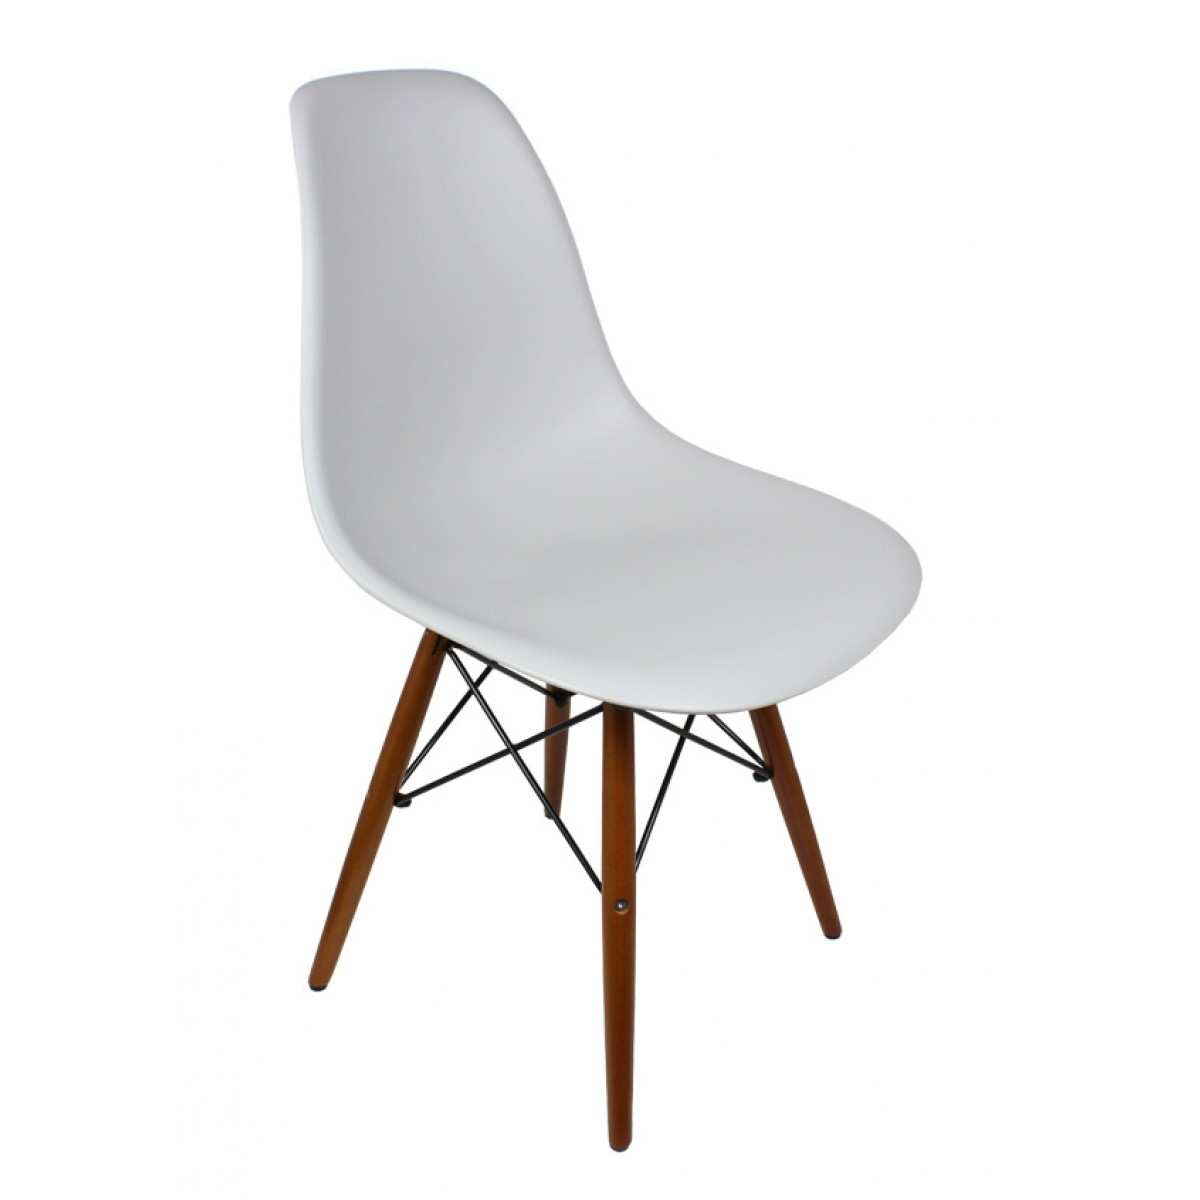 DSW Light Gray Plastic Dining Shell Chair With Dark Walnut Wood Eiffel Legs